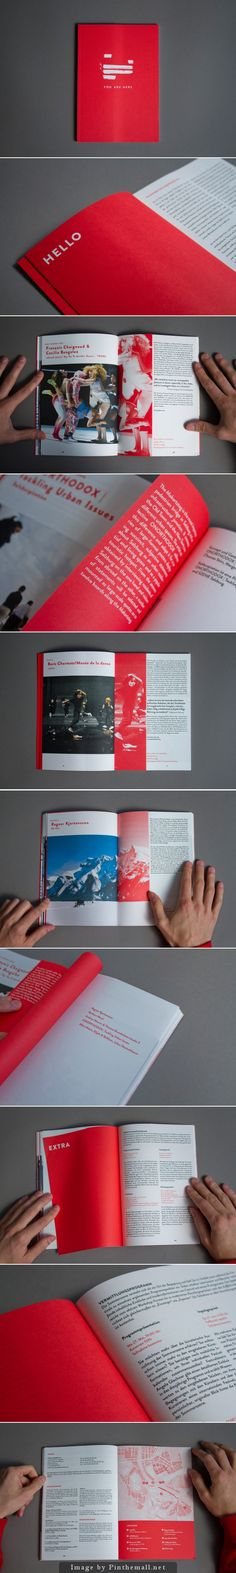 Simple and Effective Magazine Layout Design for Sommerszene 13